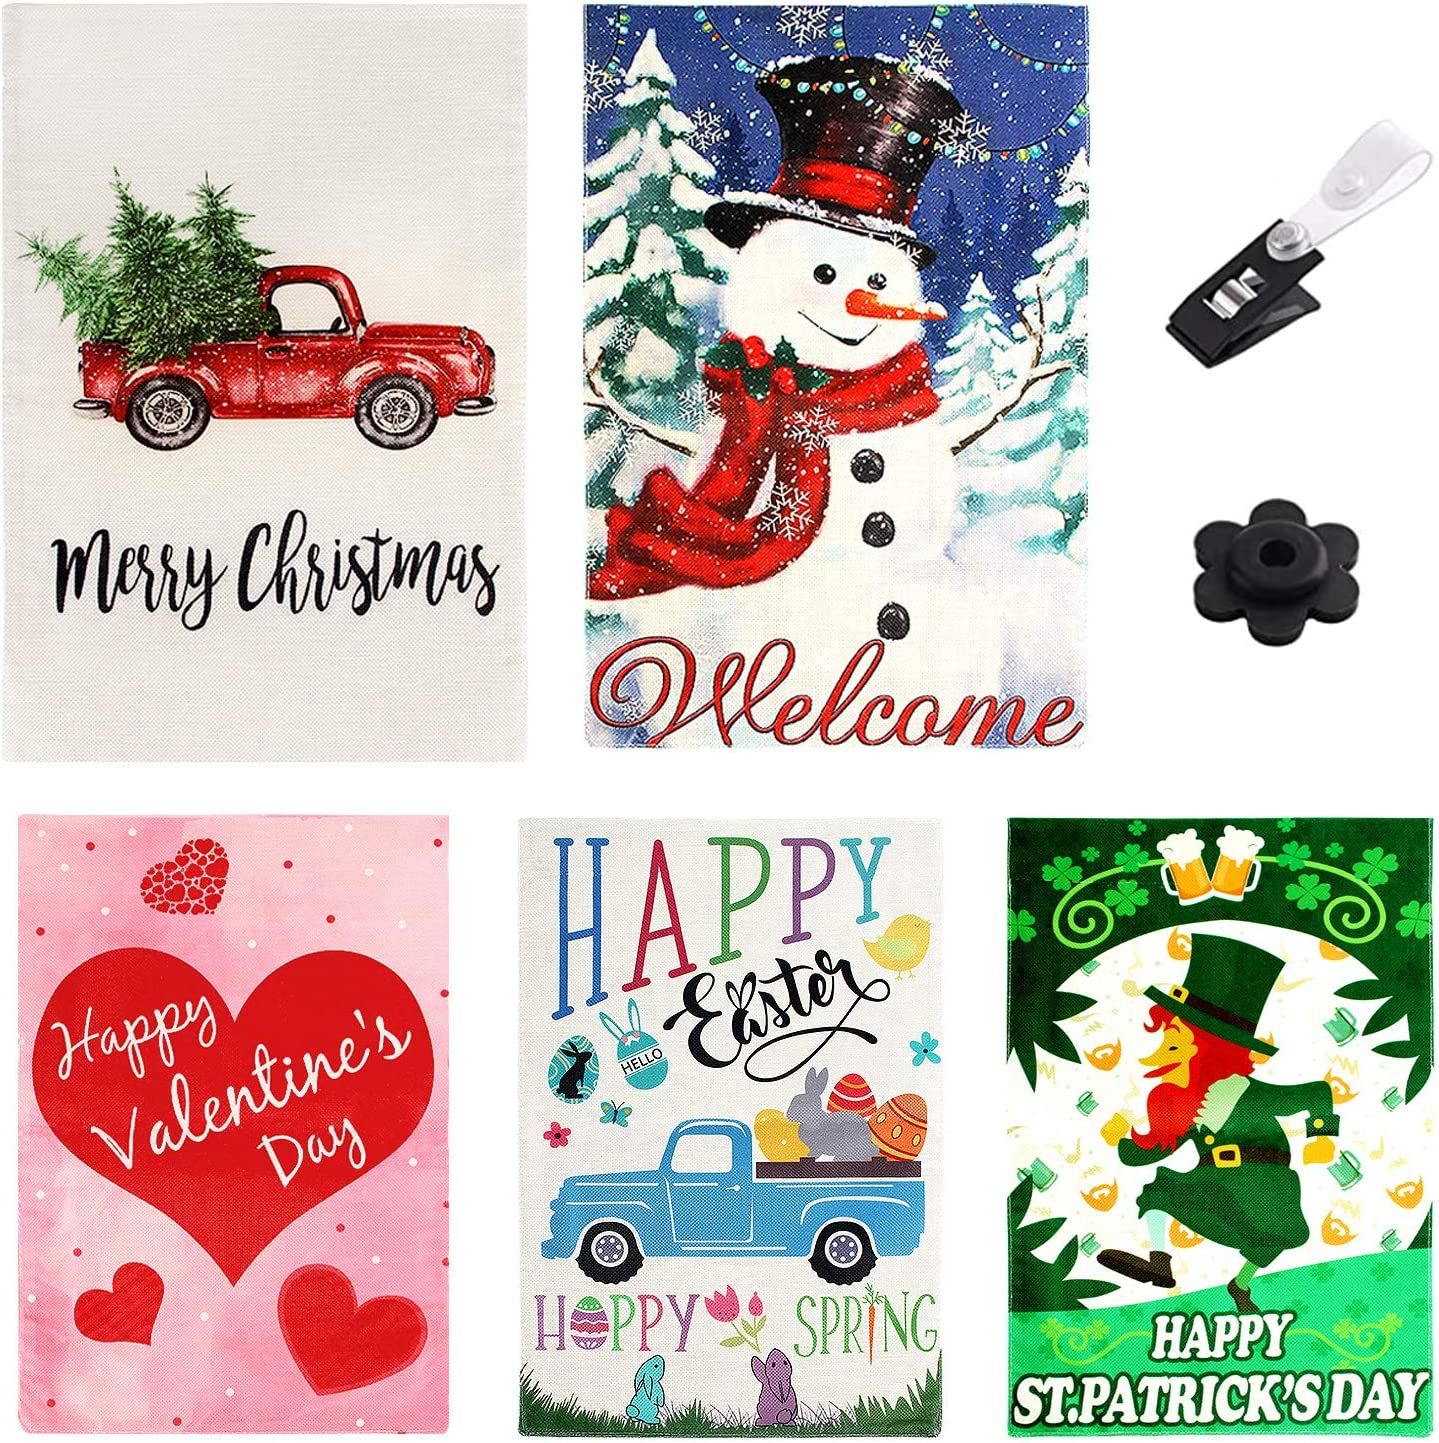 Christmas Garden Flag Double Sided, Seasonal Garden Flags Set 5 Pack, Outdoor Christmas Yard Decorations with Anti-Wind Clip & Rubber Stopper, Winter Garden Flag Holiday Yard Rustic Decor 12 x 18 Inch